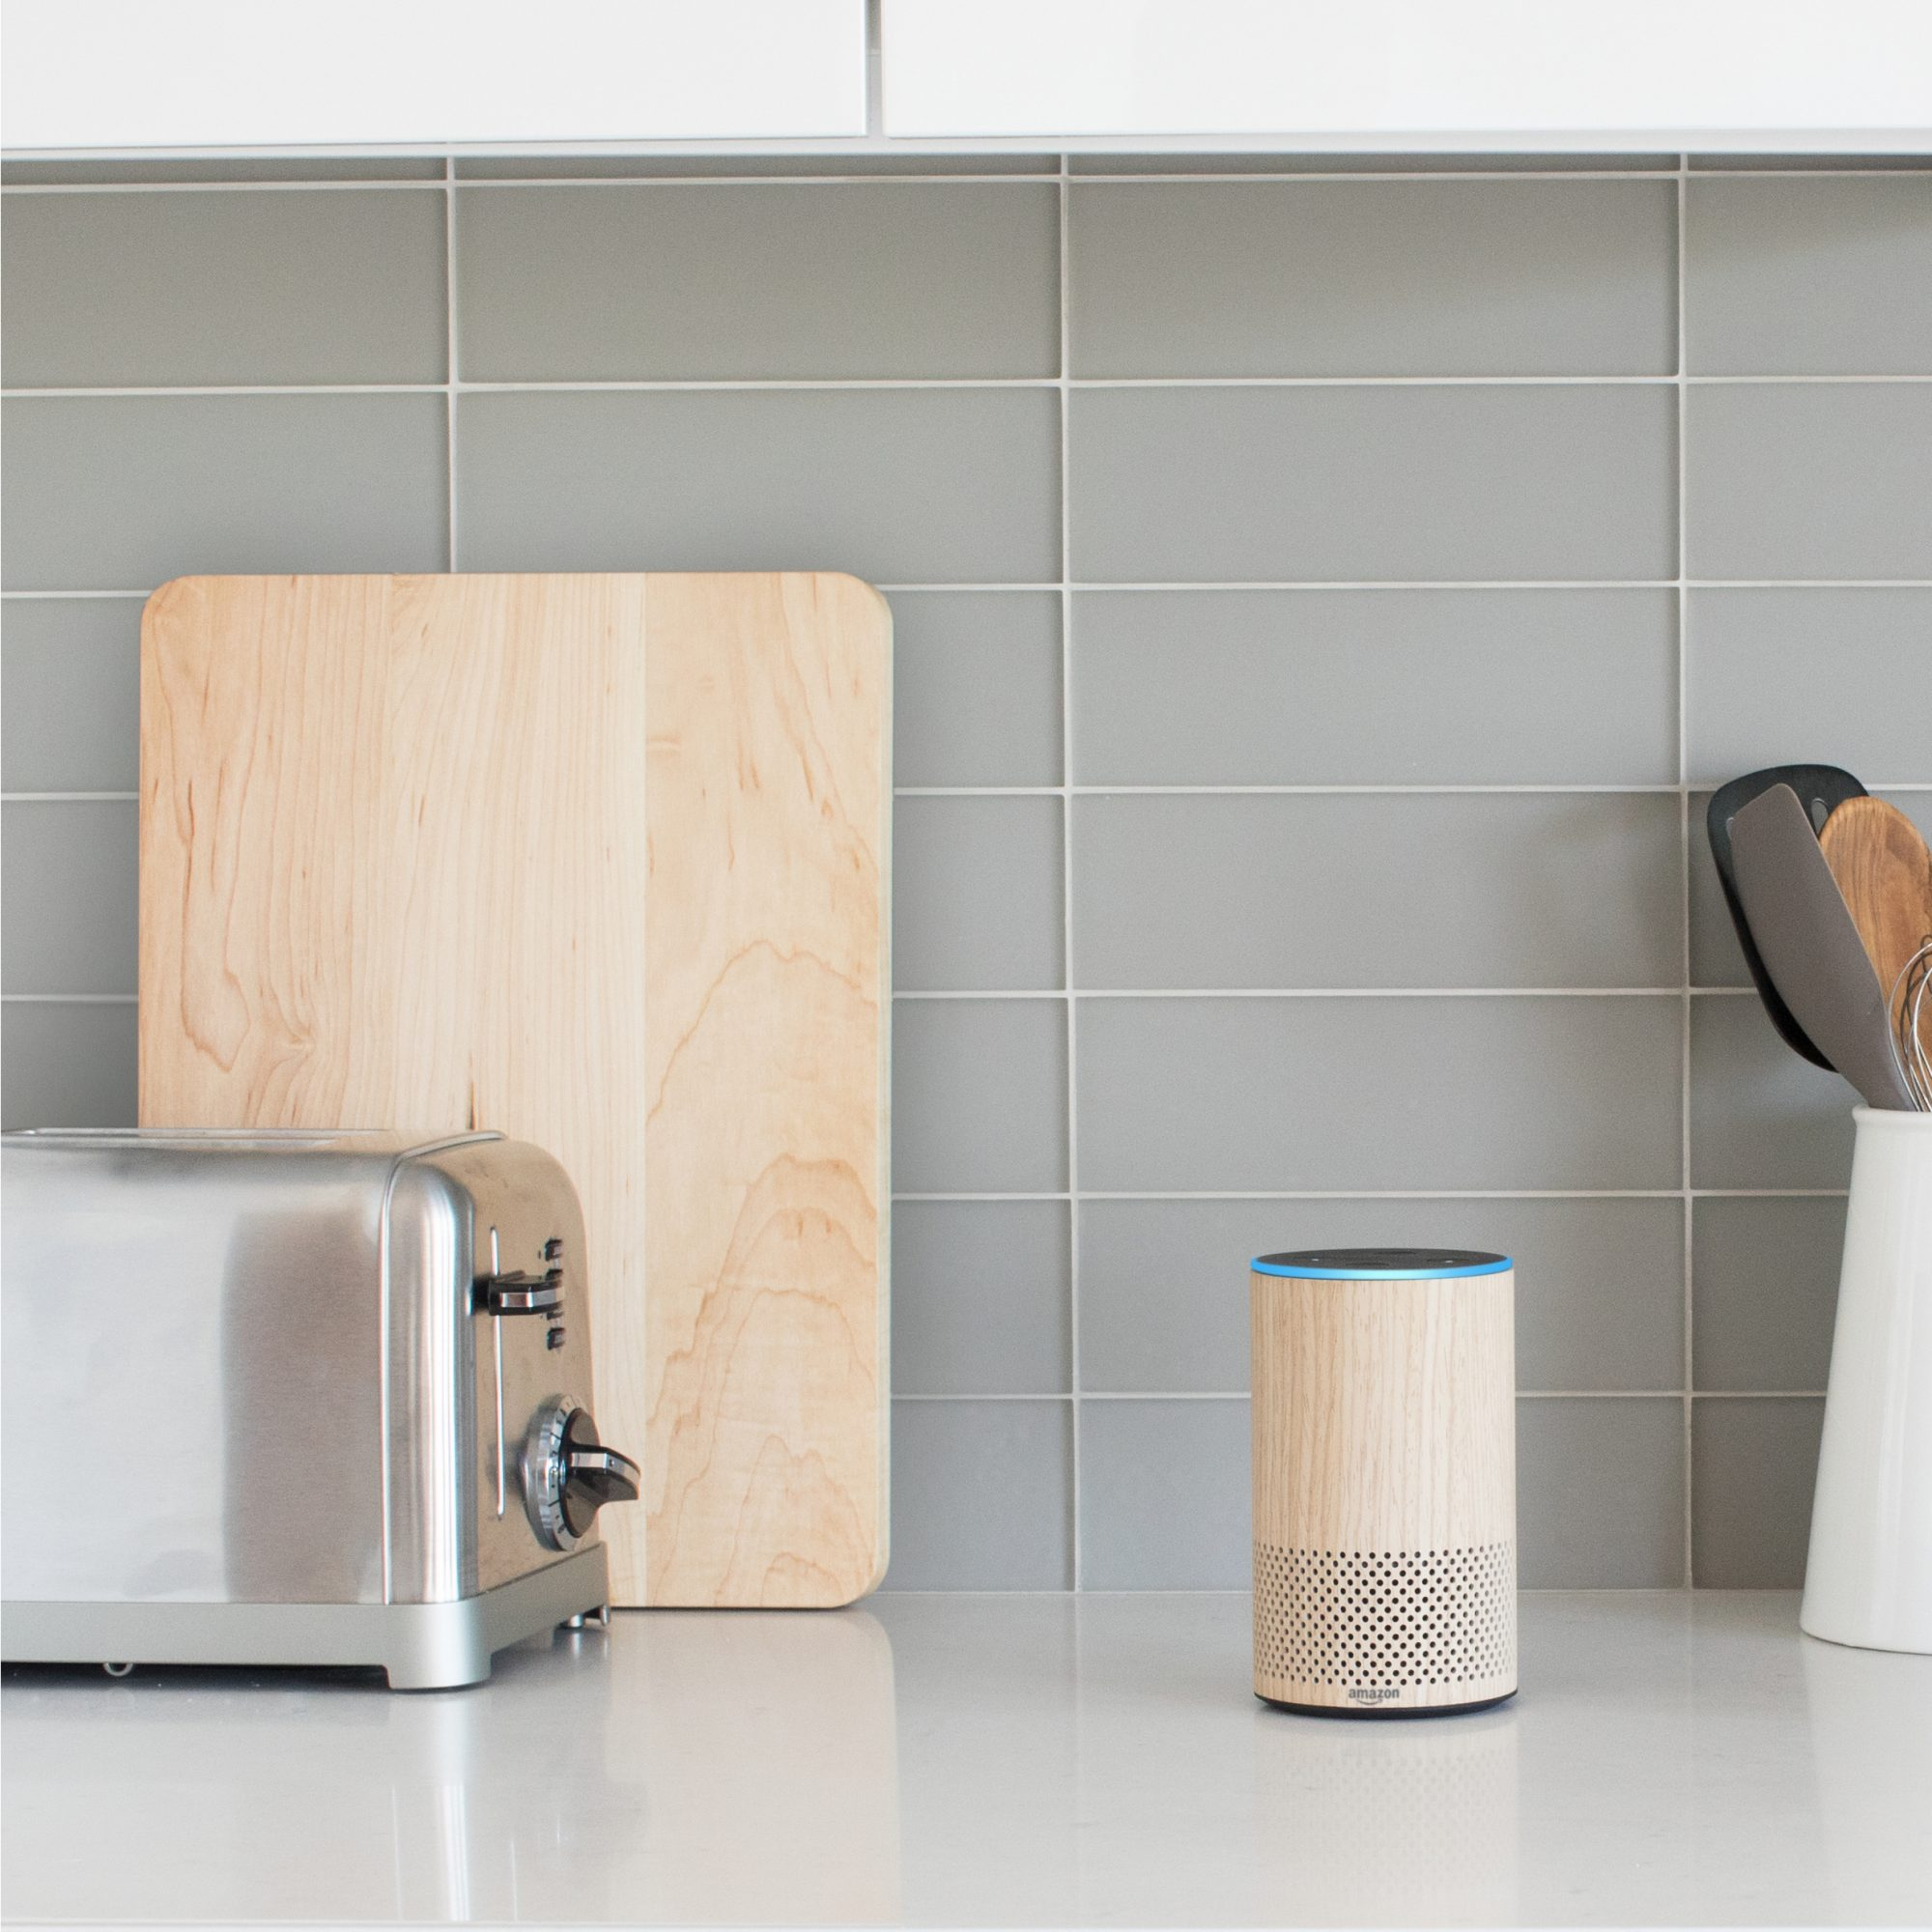 Amazon Echo on counter